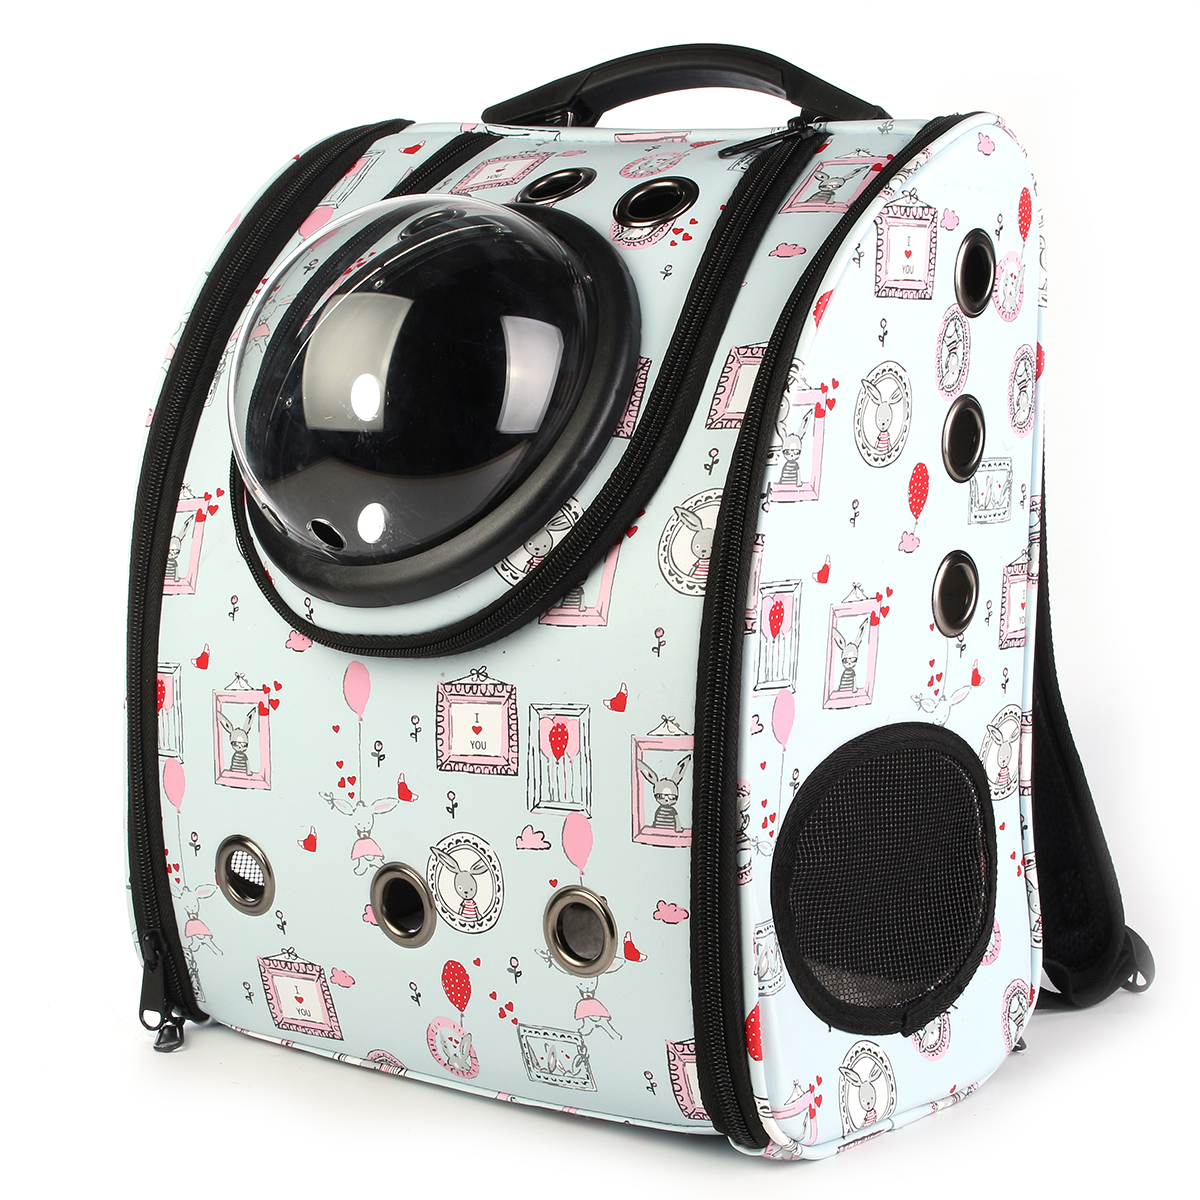 Space Astronaut Capsule Pet Cat Dog Puppy Carrier Travel Bag Space Capsule Backpack Breathable Cute Rabbit